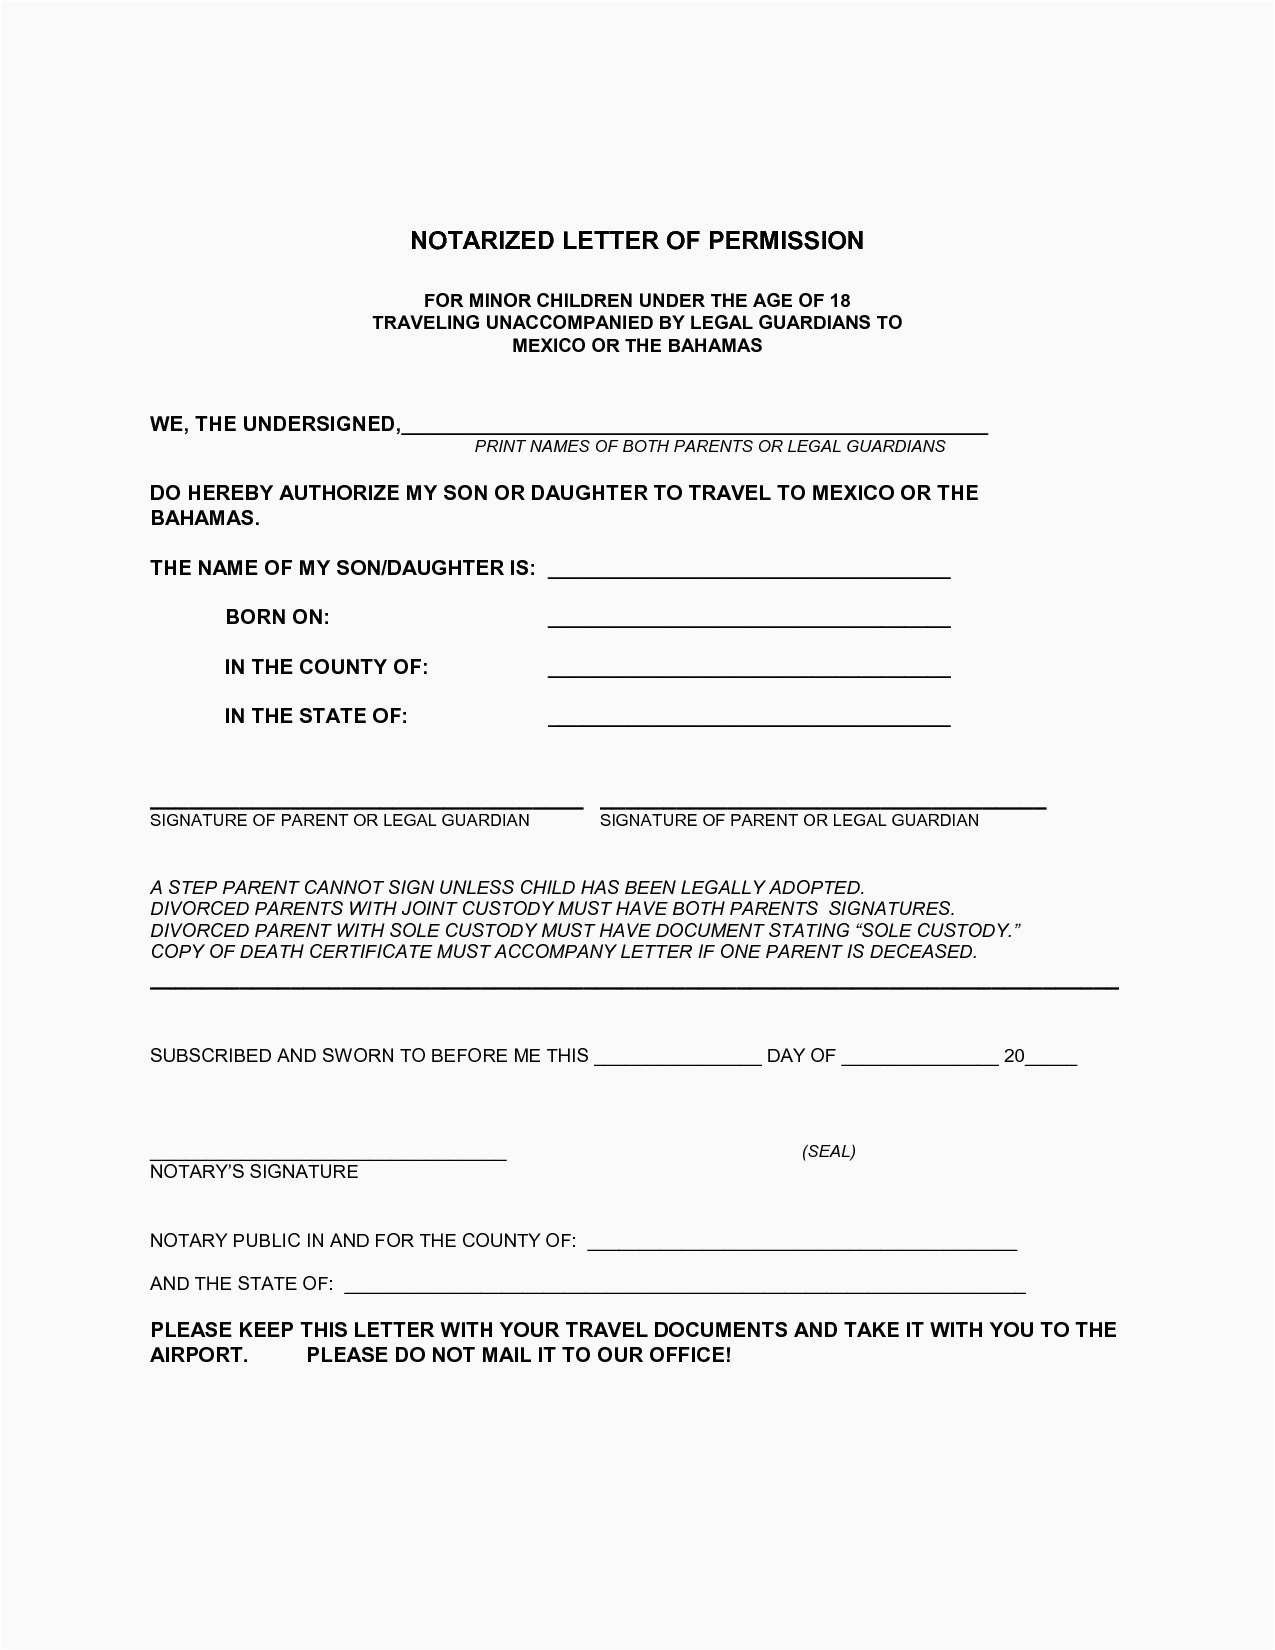 Sample Notarized Letter For Travel With Child  Myvacationplan Within Notarized Letter Template For Child Travel